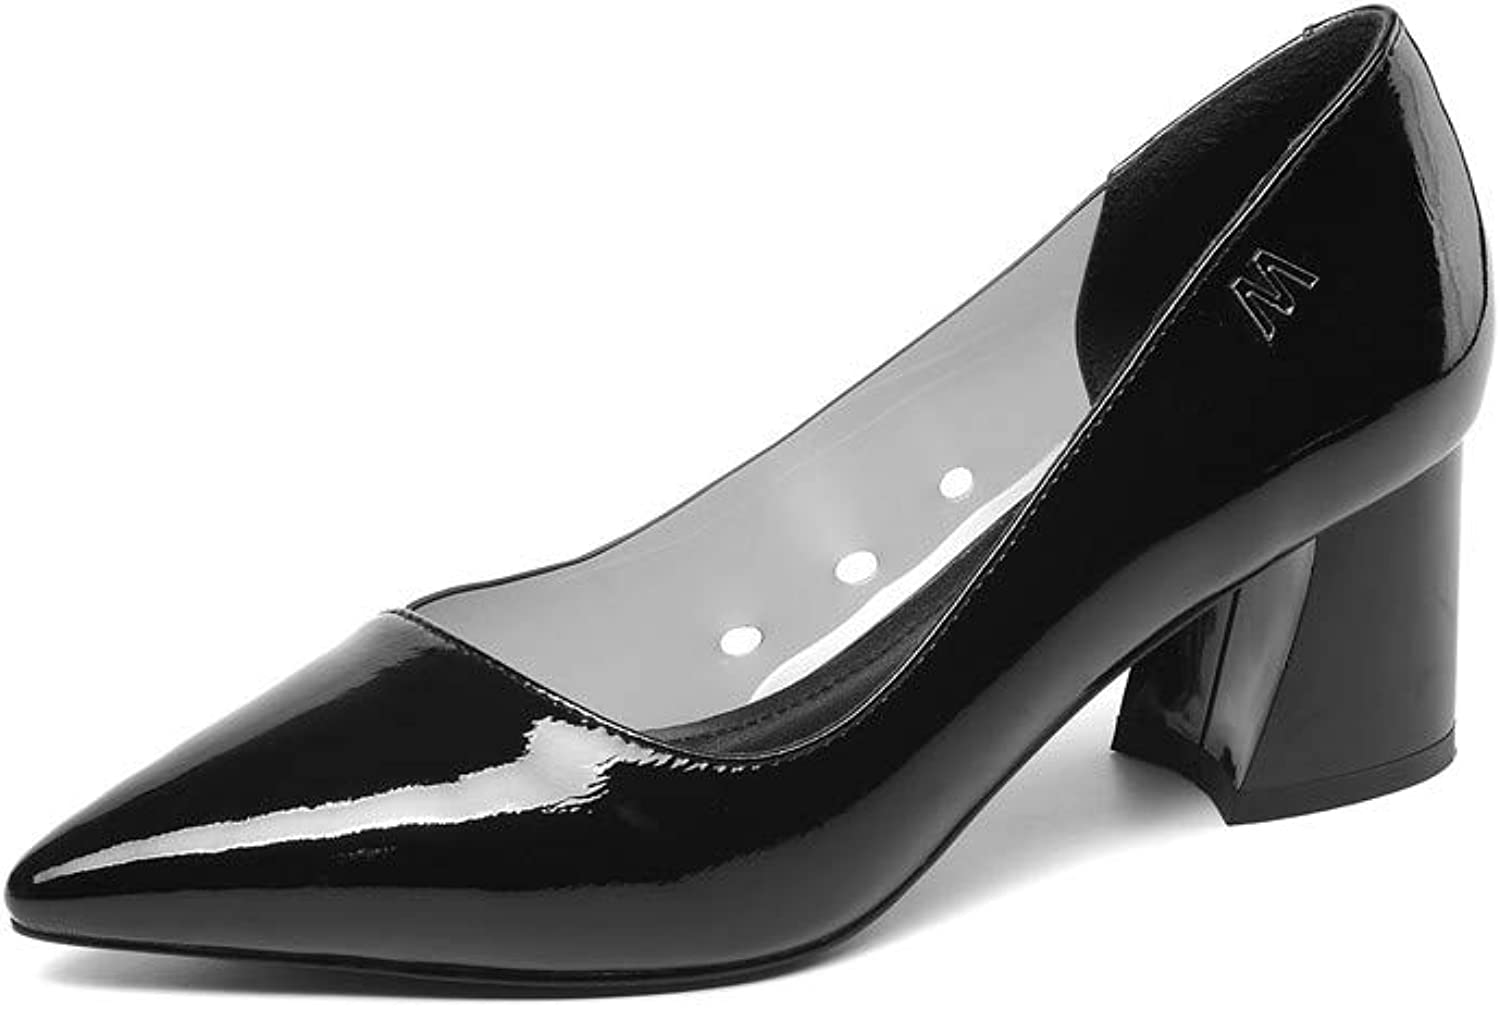 Nine Seven Glossy Patent Leather Women's Pointed Toe Mid Chunky Heel Graceful Handmade Transparent PVC Fashion Slip On Women Concise Style Cute Pumps